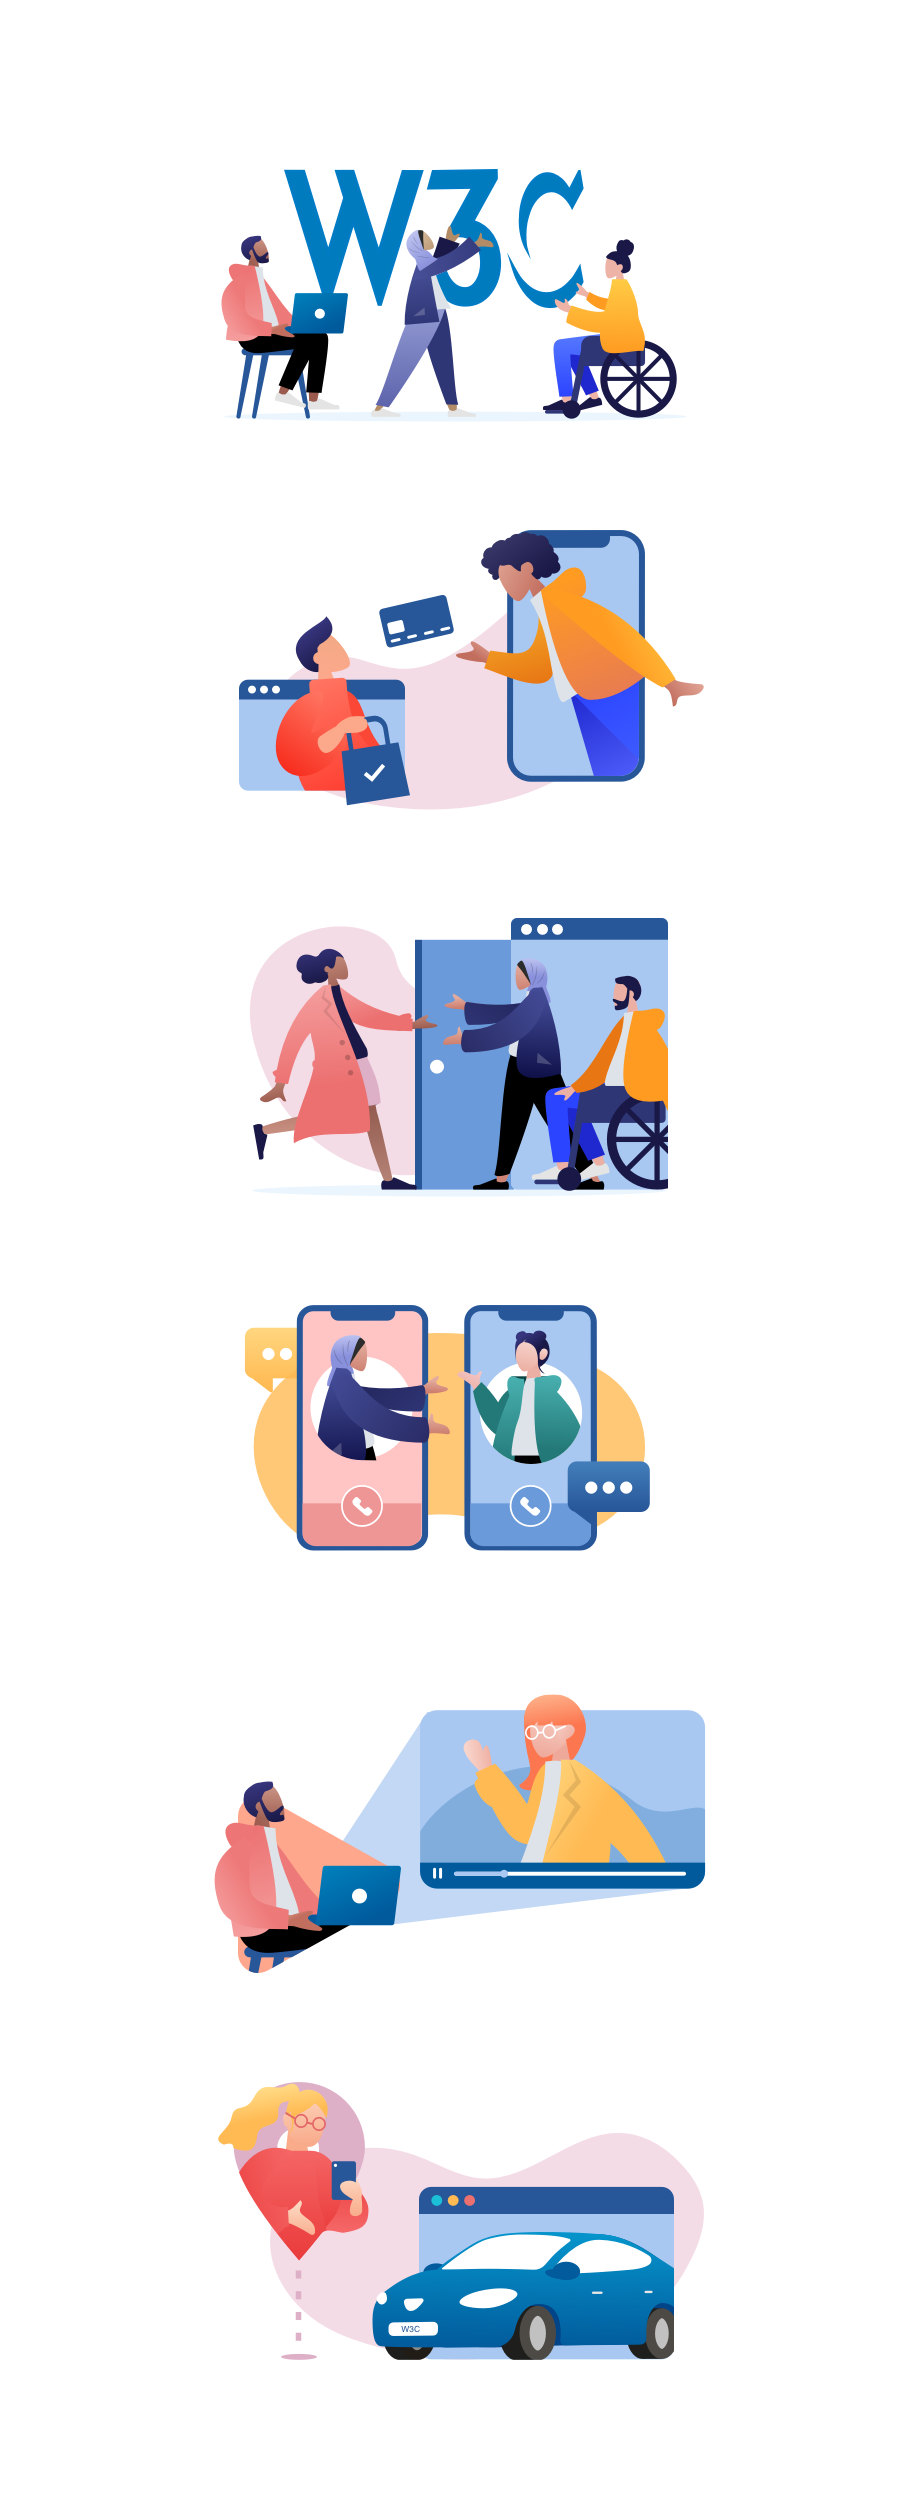 A set of illustrations showing people with different physical needs, ethnicities, genders and skin tones, engaged in online activities. The activities depict a range of technologies that W3C set the standard for, such as web devices, browsers, web payments and accessibility.